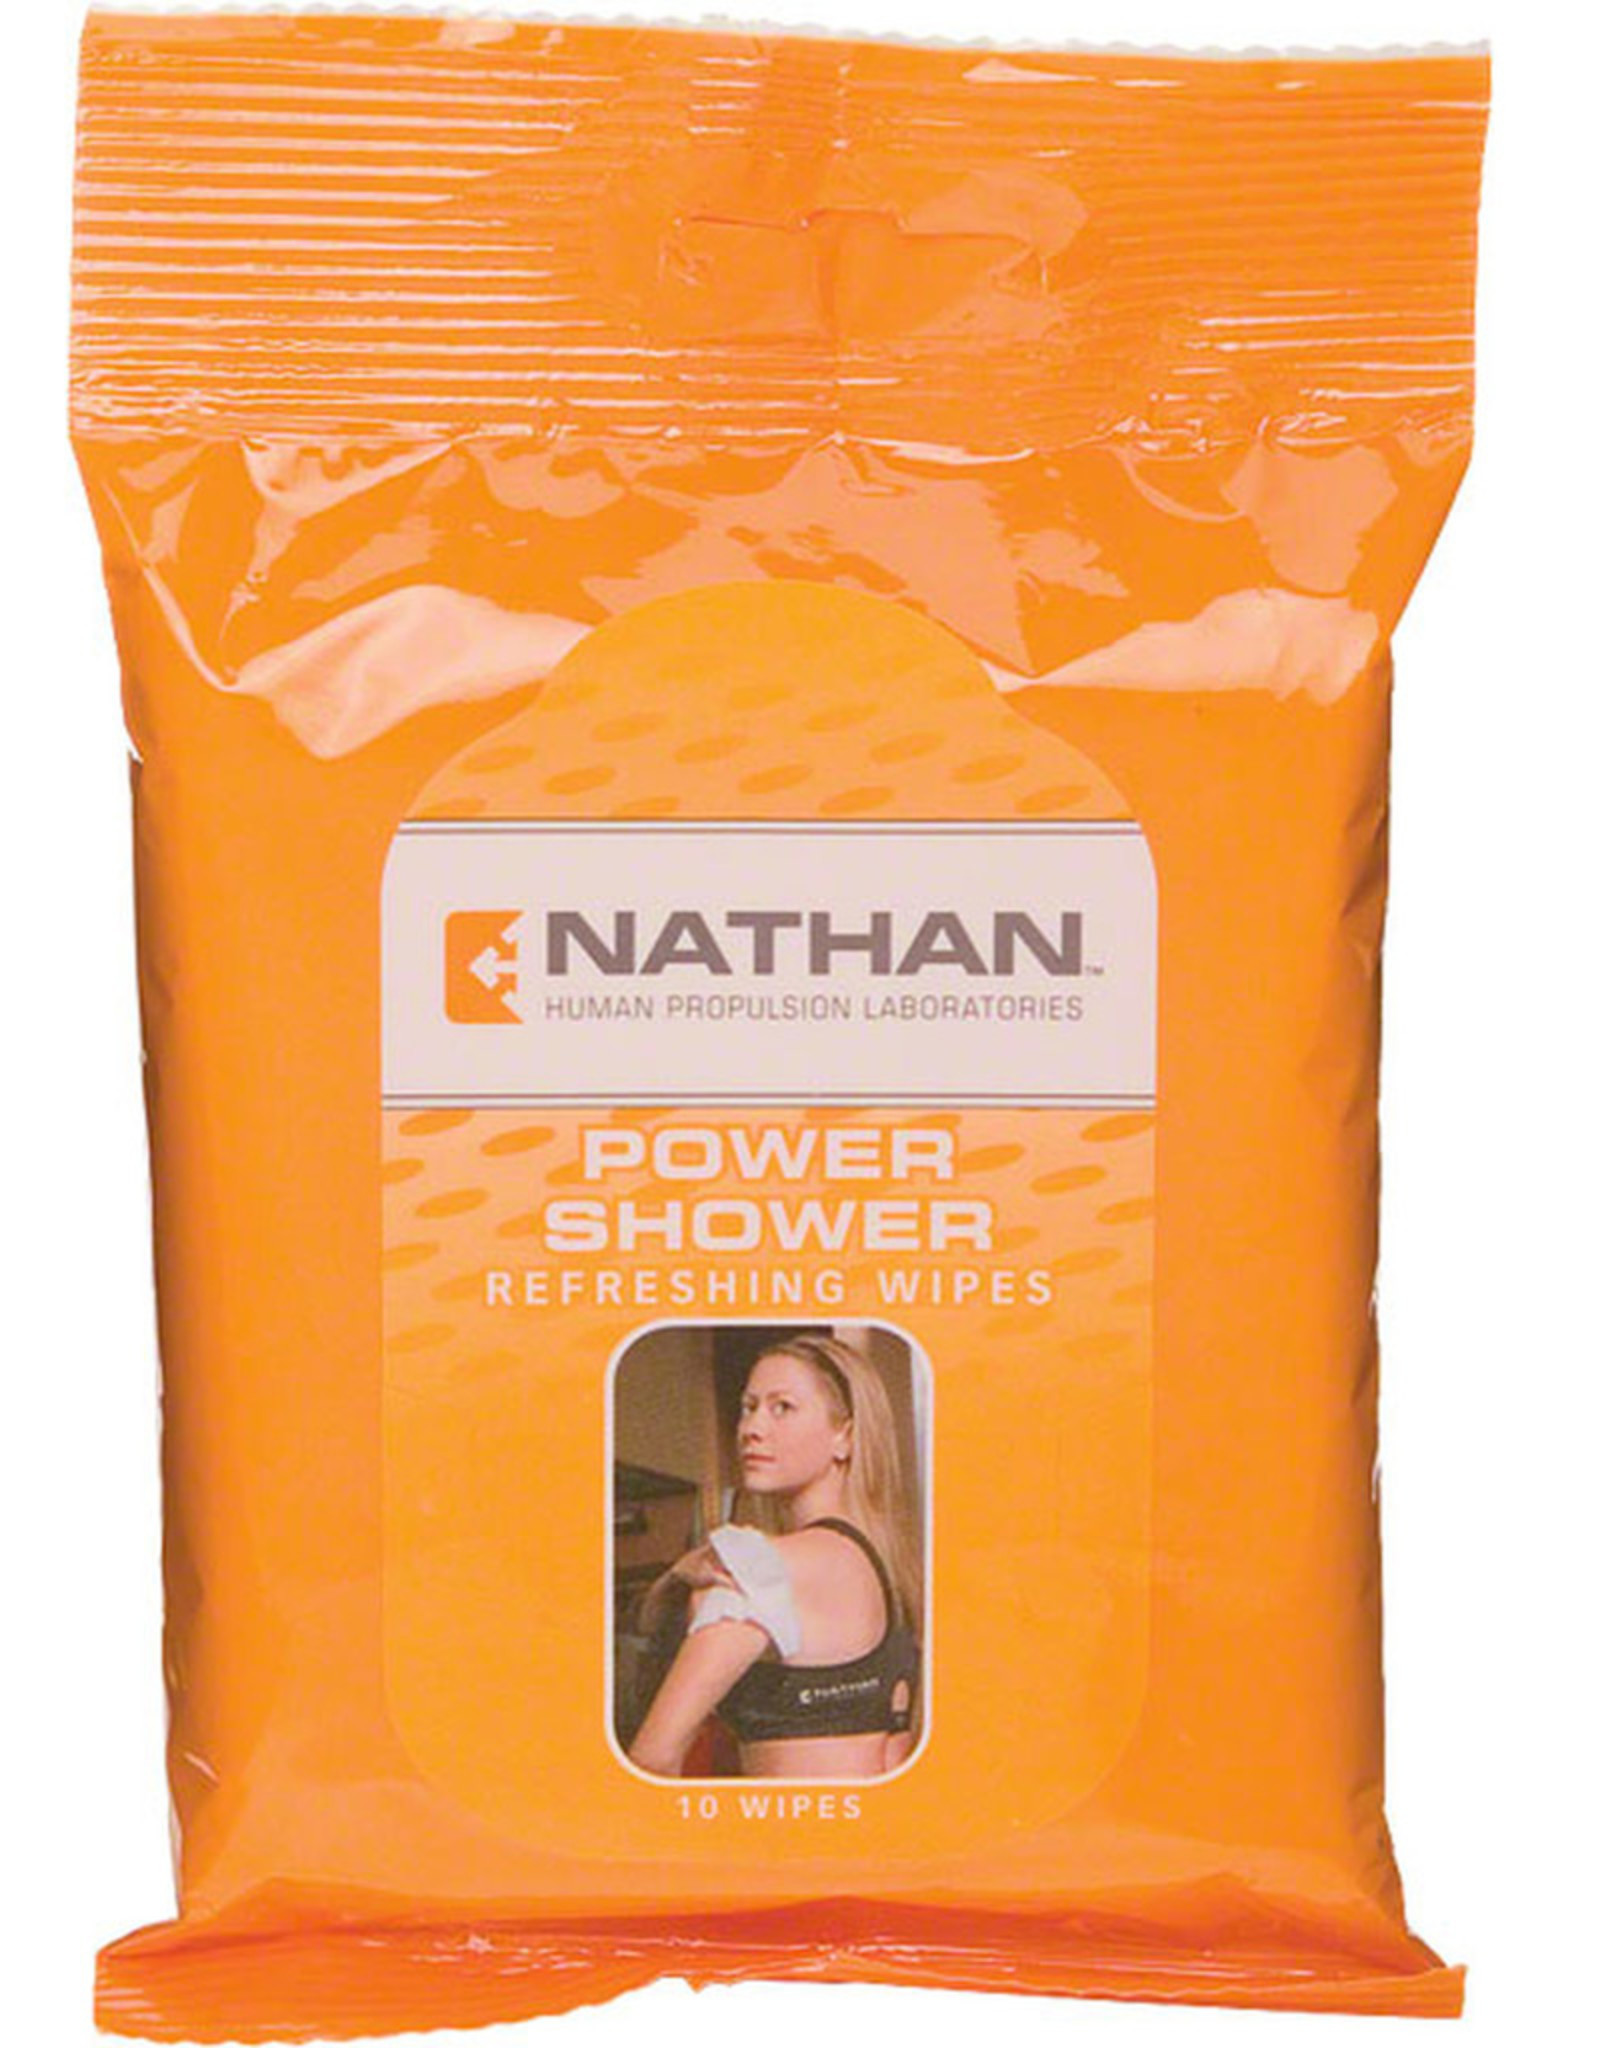 NATHAN POWER SHOWER BODY WIPES